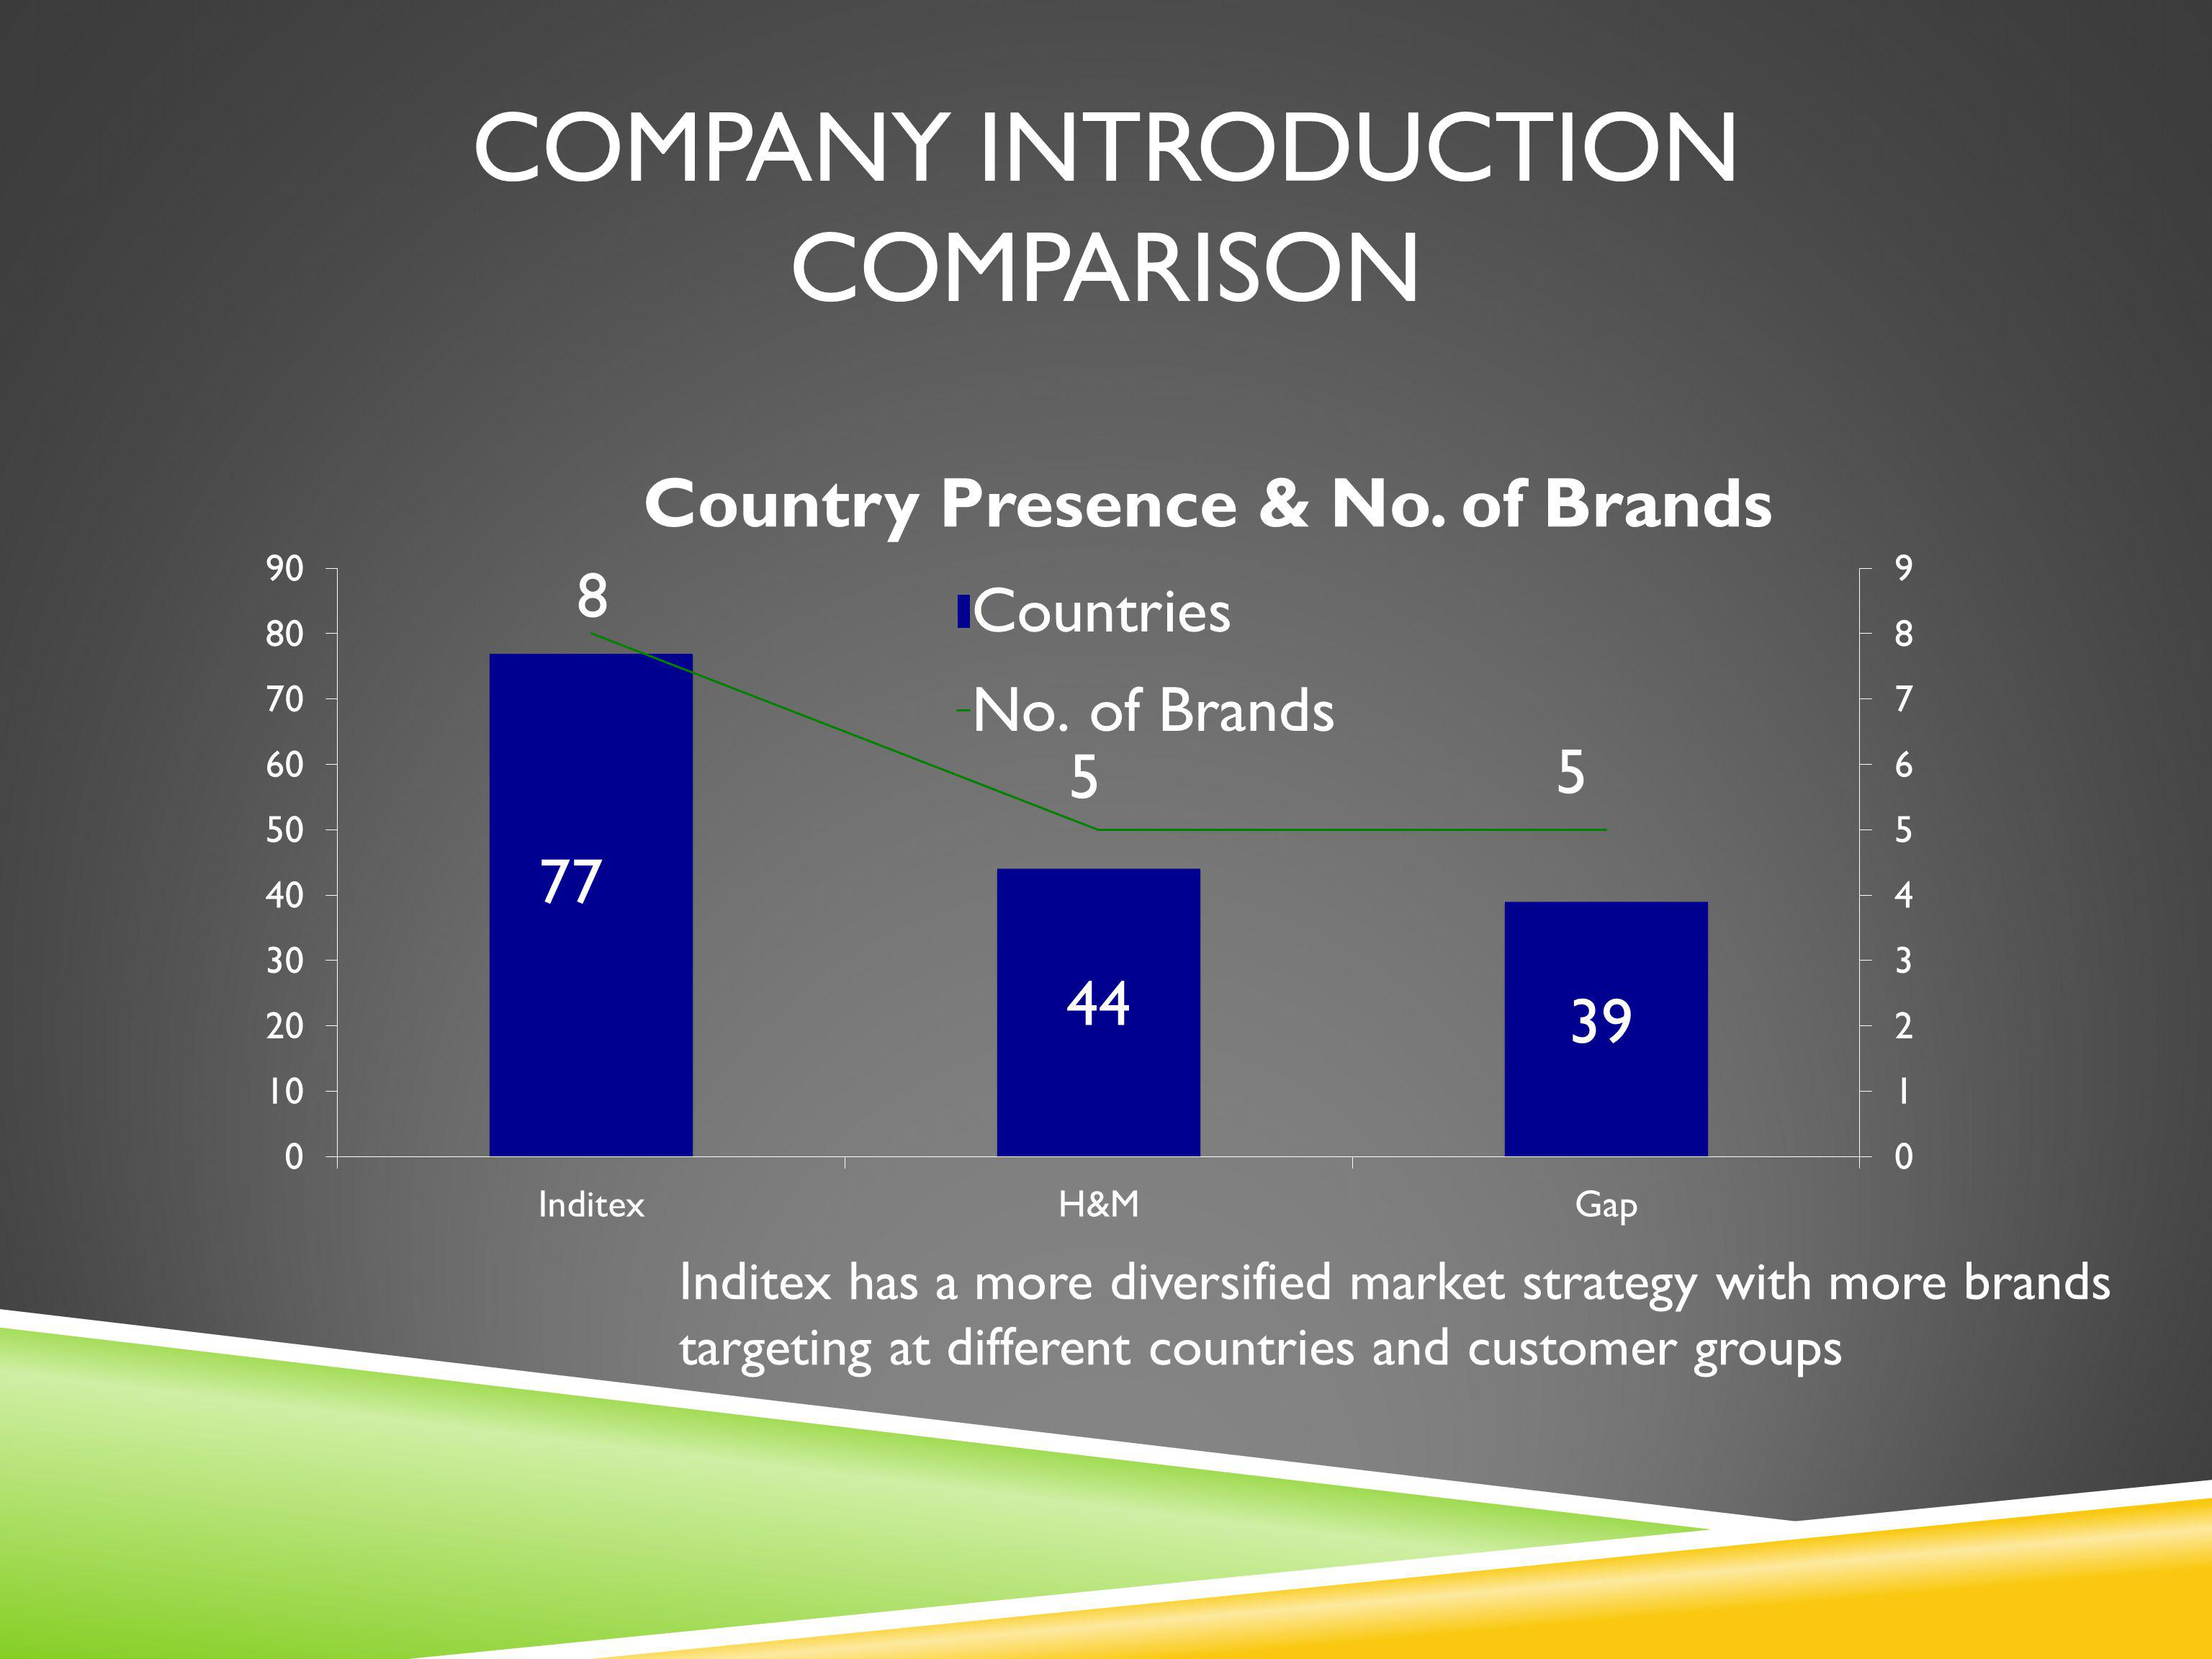 Inditex has a more diversified market strategy with more brands targeting at different countries and customer groups COMPANY INTRODUCTION COMPARISON